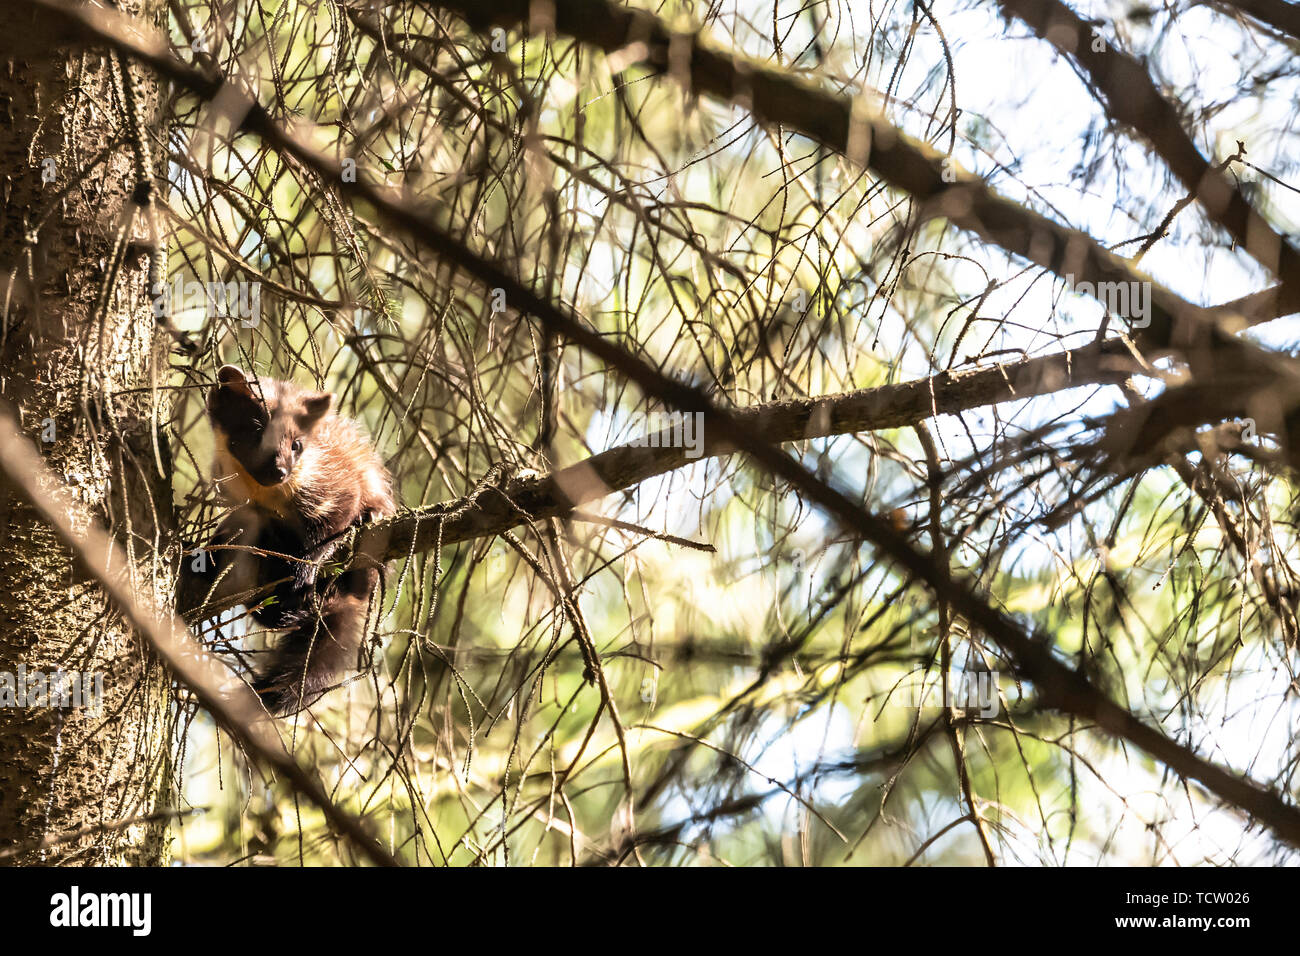 Selkirk, Scottish Borders, UK. 10th June 2019. A Pine Marten kit branches out from the family nest on a summers evening near Selkirk in the Scottish Borders. The population is only just beginning to infiltrate the south east of Scotland after reintroduction further north and west. Credit: Chris Strickland / Alamy Live News - Stock Image